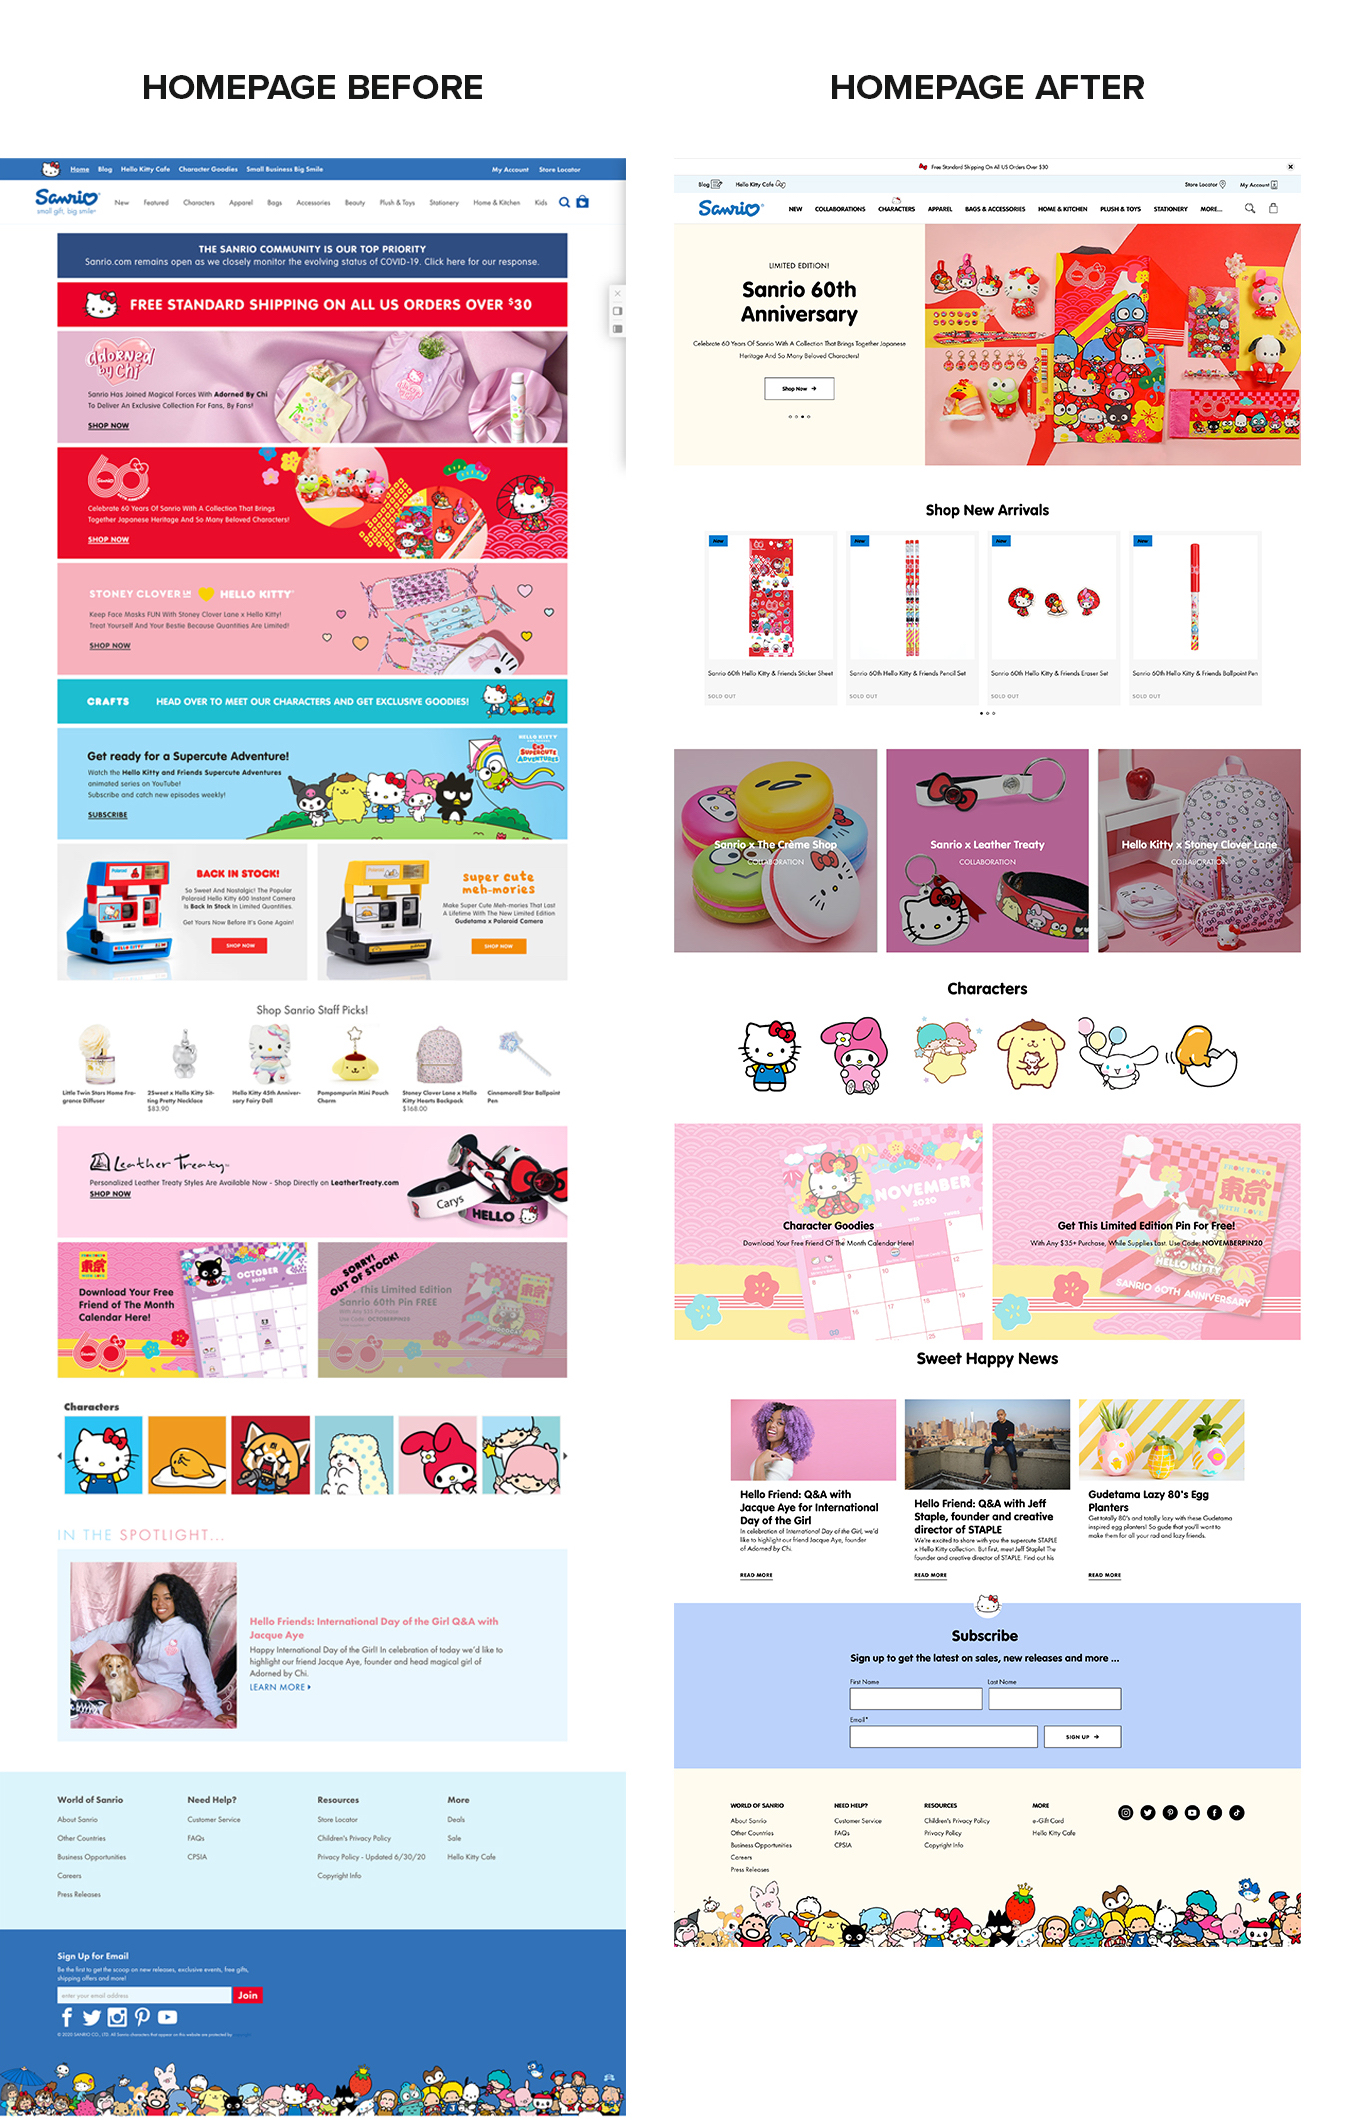 A before and after desktop screen of the Sanrio site homepage